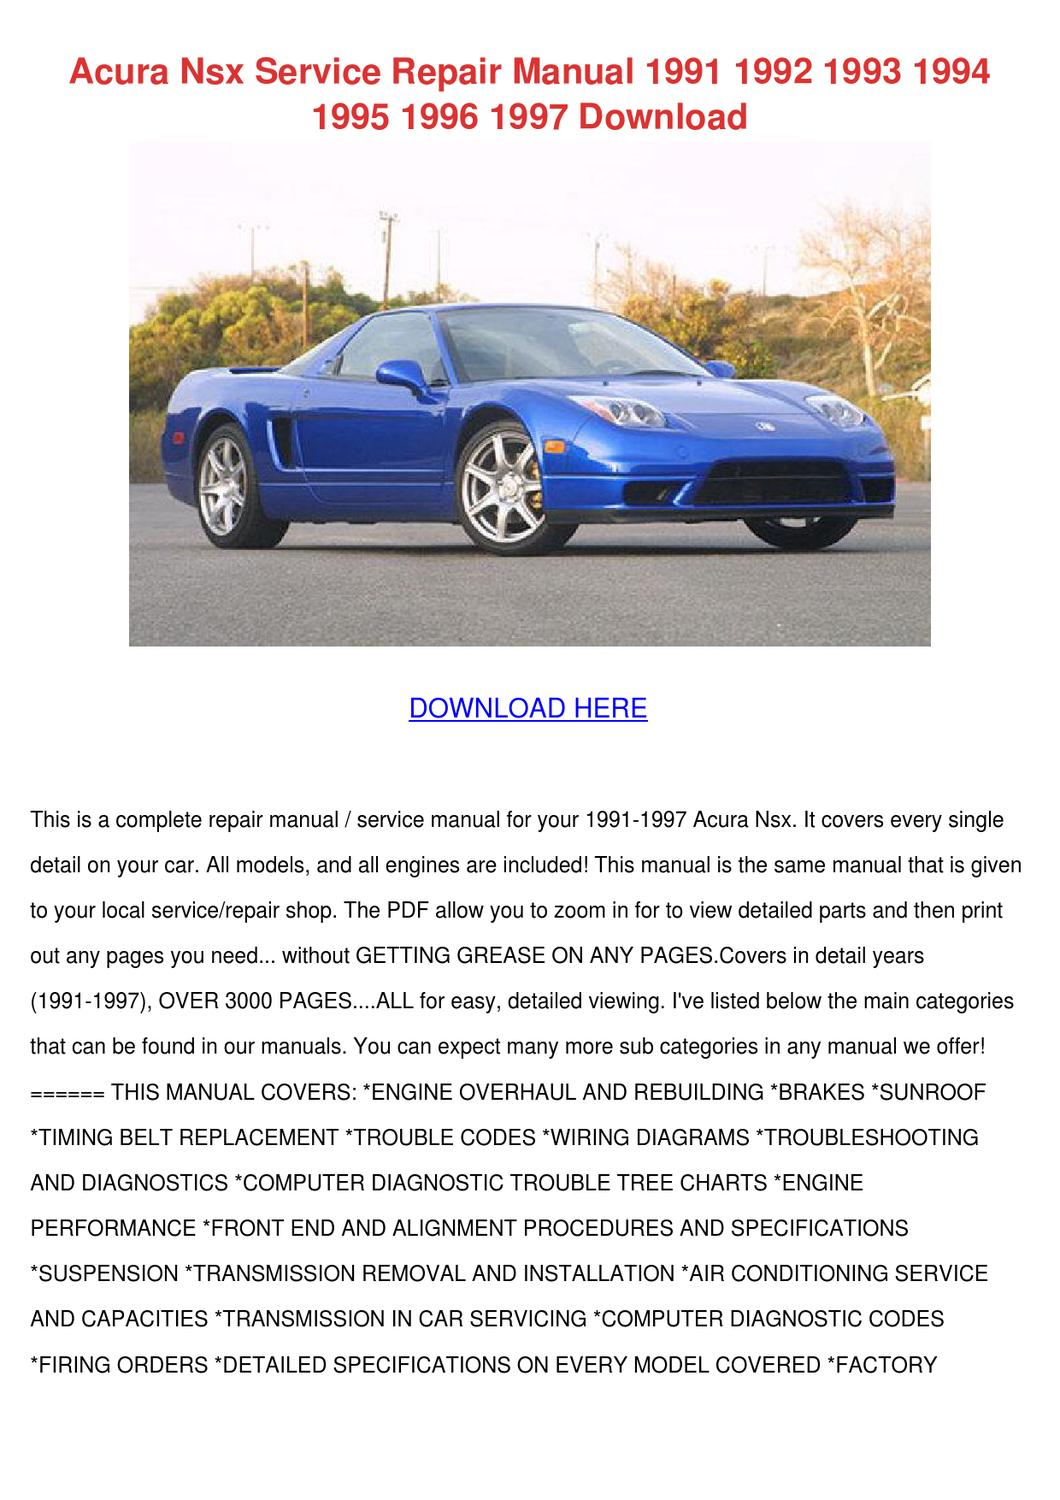 Timing Belt Setting Diagrams Acura Nsx Service Repair Manual 1991 1992 199 By Samuelsage Issuu